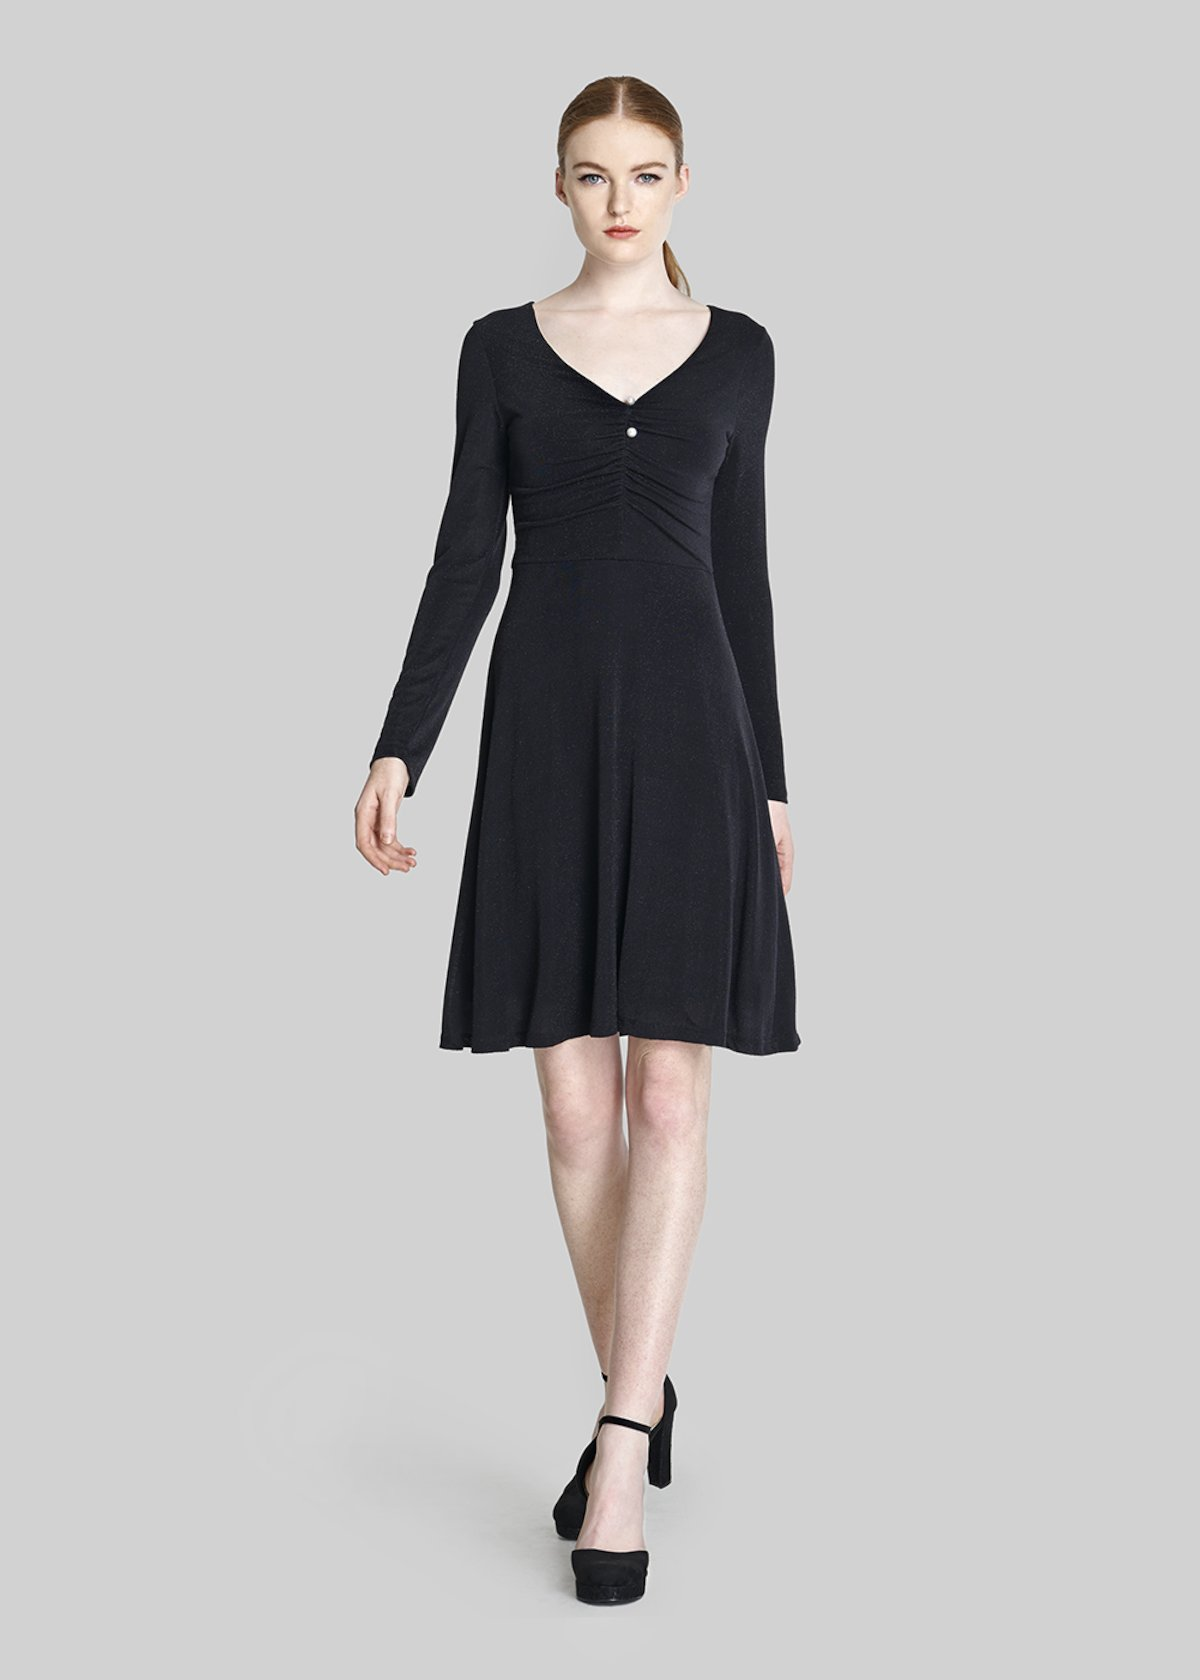 Andry Dress of lurex jersey with pearls on the front - Black